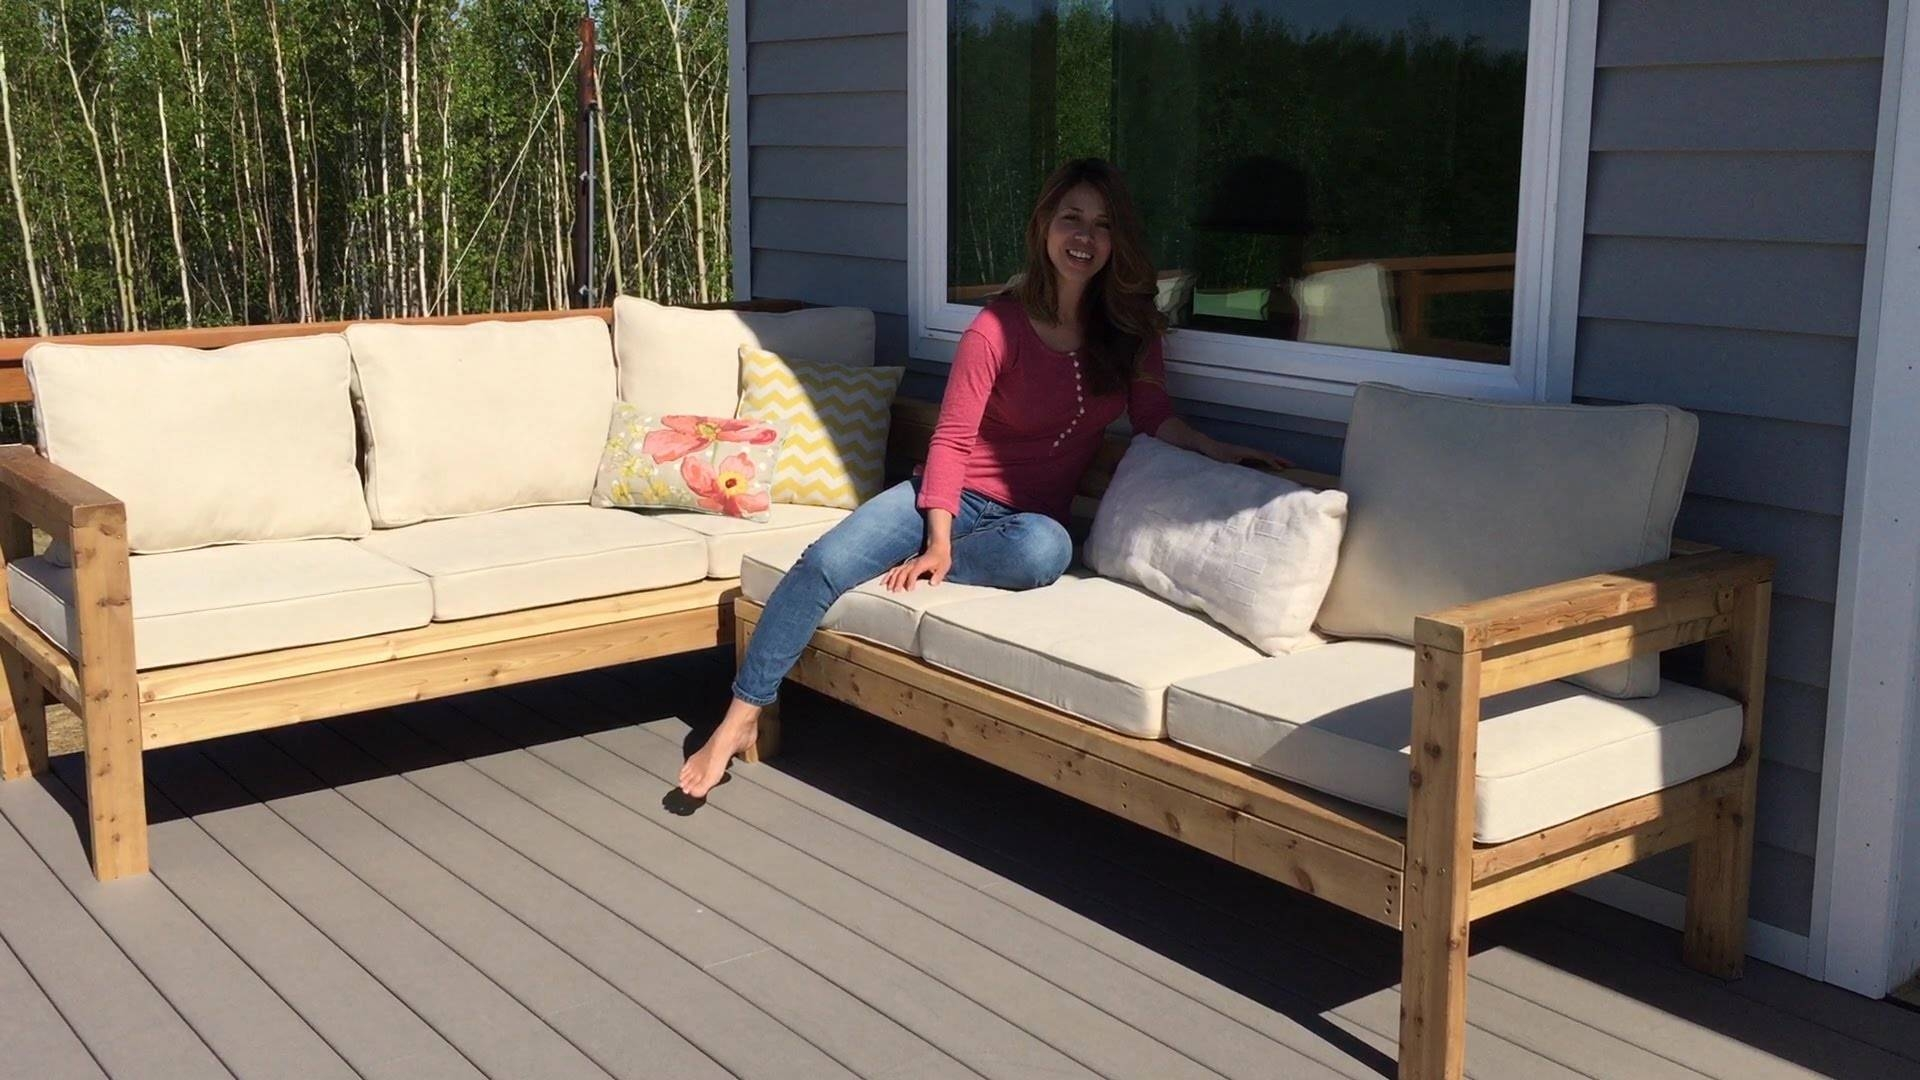 How To Build A 2X4 Outdoor Sectional Tutorial - Youtube inside Diy Sectional Sofa (Image 19 of 30)